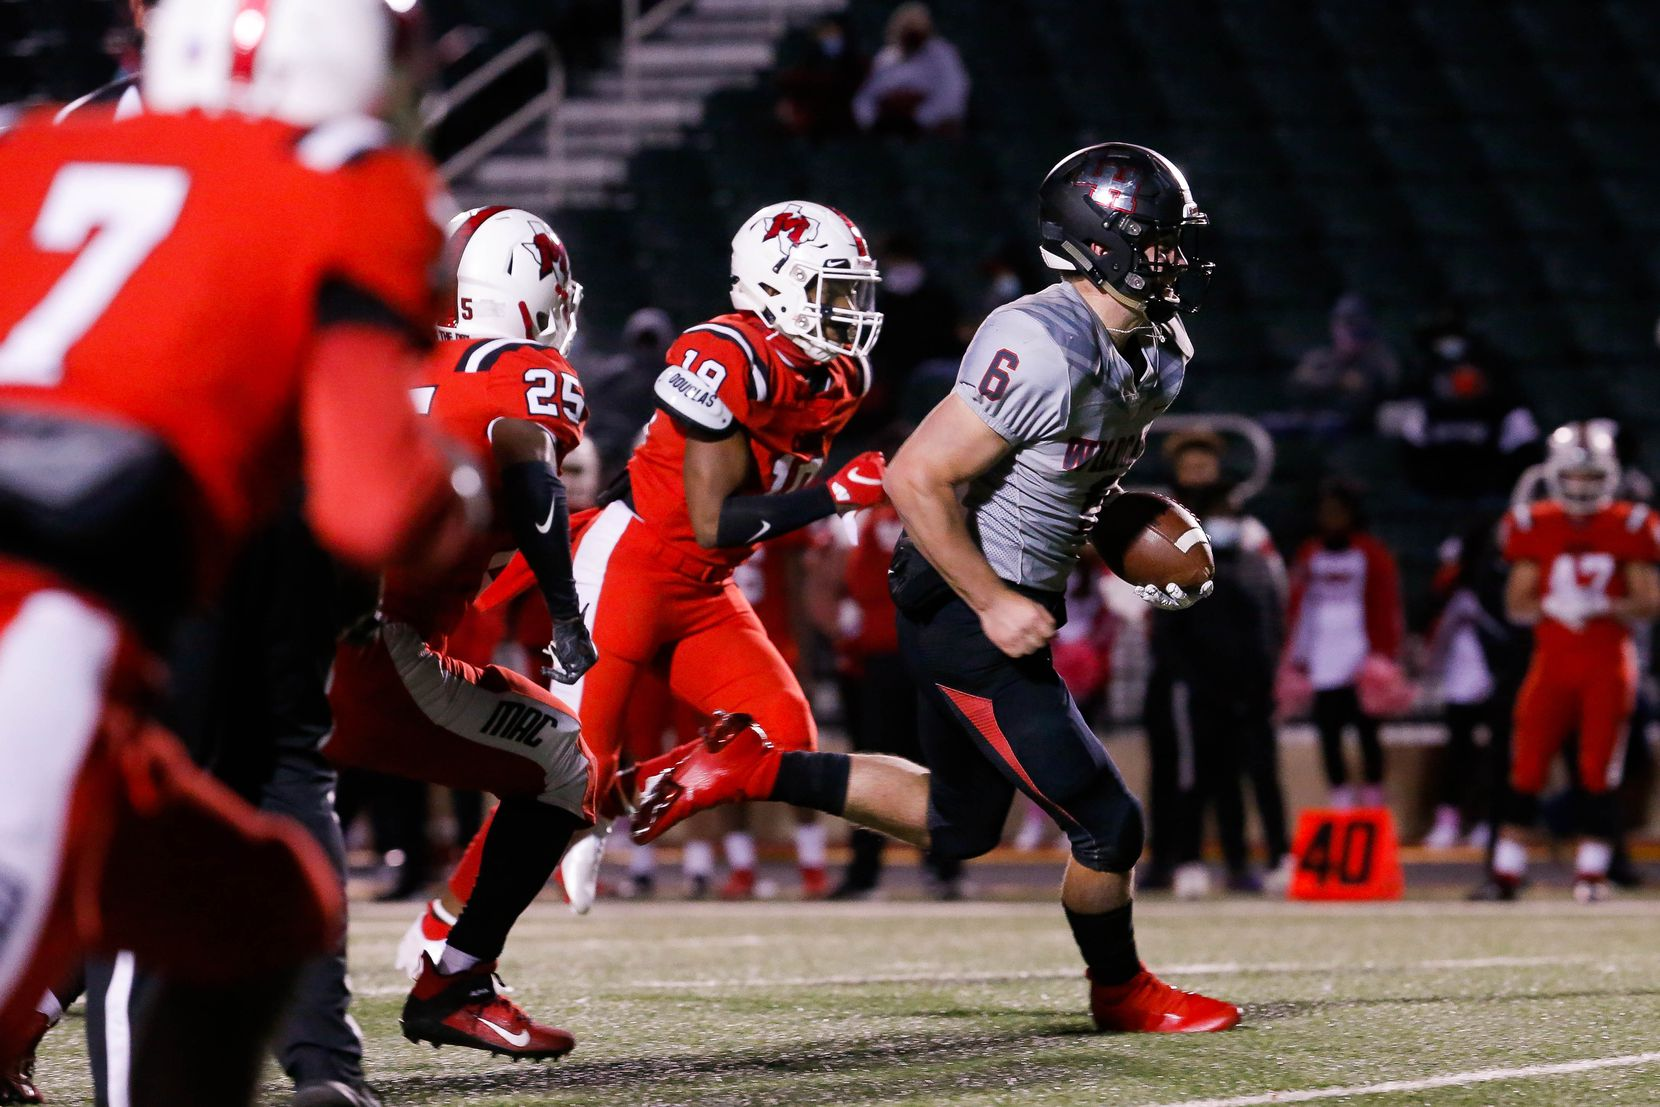 Lake Highlands quarterback Mitch Coulson (6) slips past the Irving MacArthur defense for a touchdown during the fourth quarter of a high school football game at Joy & Ralph Ellis Stadium in Irving on Friday, Oct. 23, 2020. (Juan Figueroa/ The Dallas Morning News)